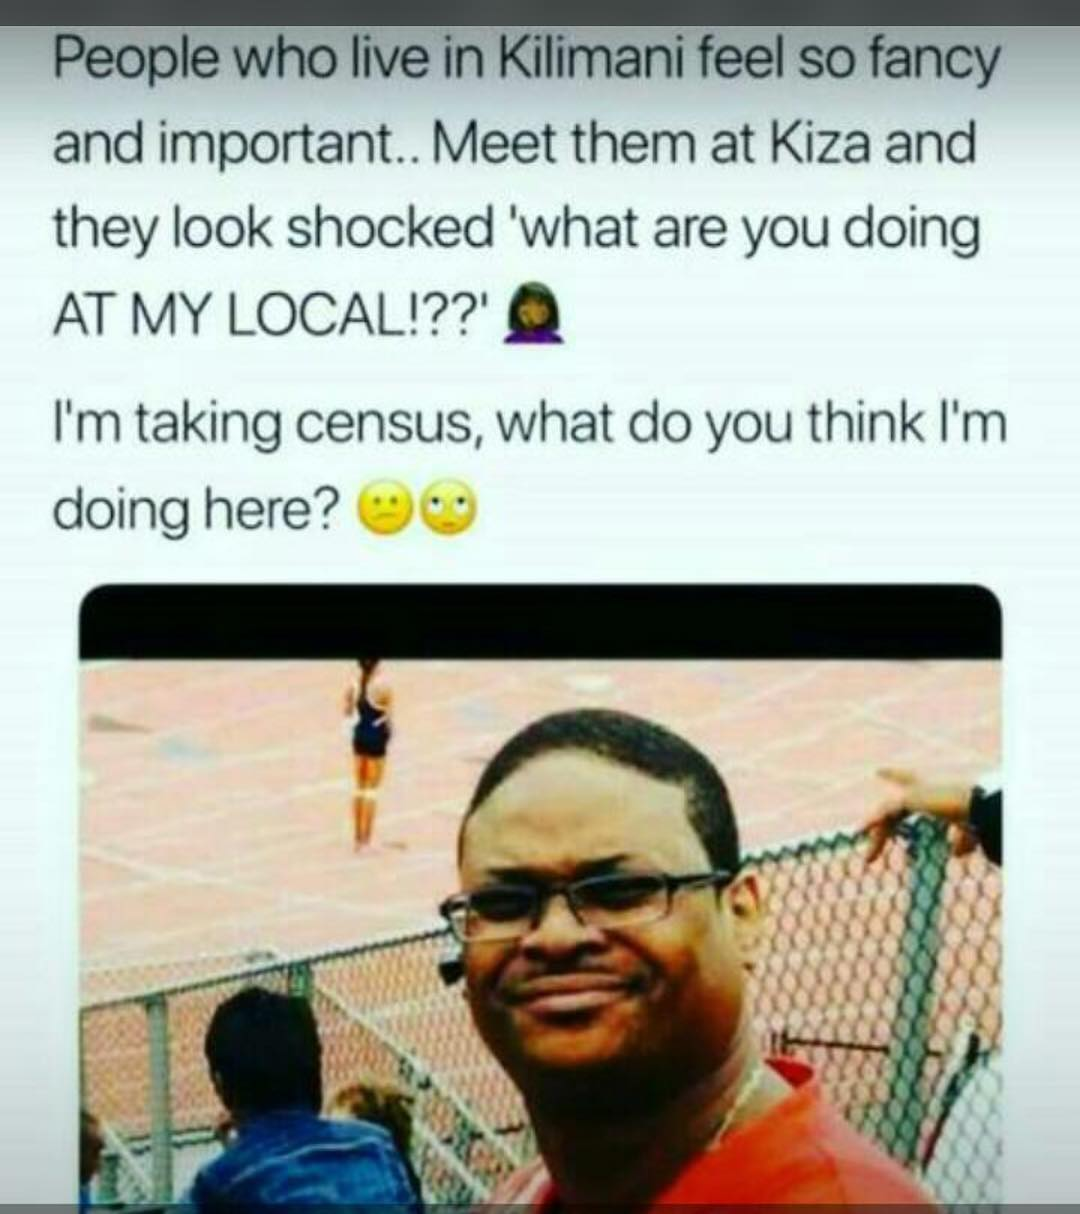 25010719 371060660012602 3142422618938802176 n - Things Slay Queens Did That Left Us Wondering If They Went To School